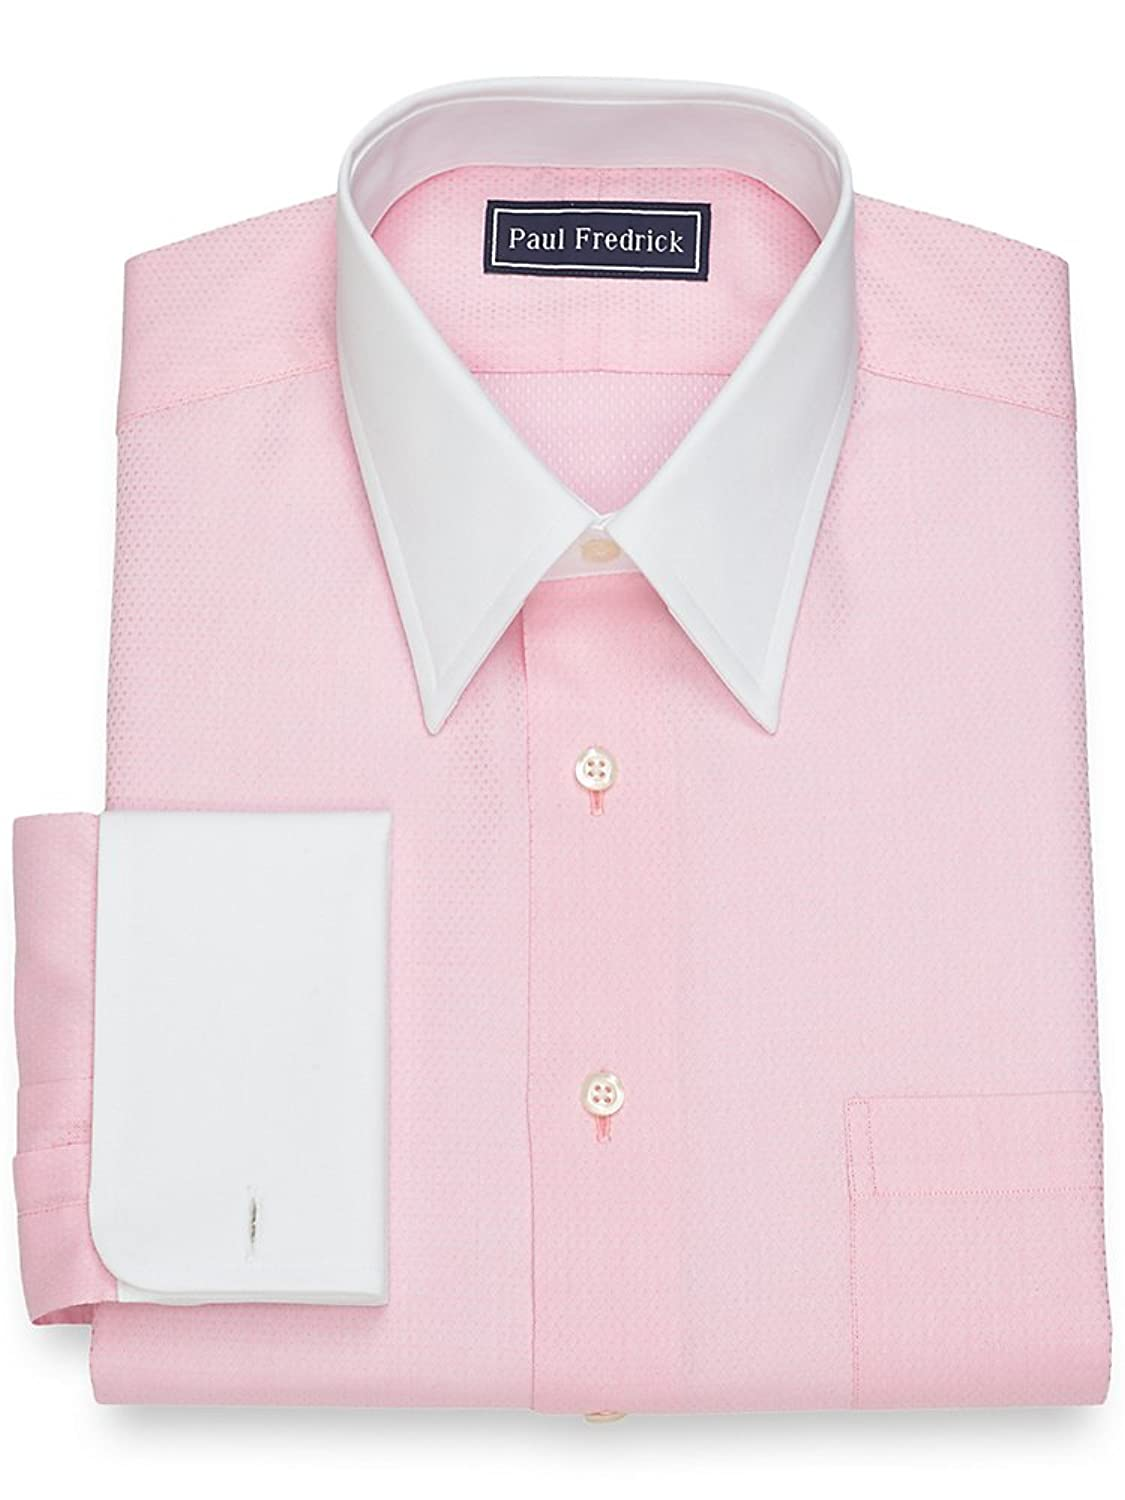 1920s Style Mens Shirts | Peaky Blinders Shirts and Collars Paul Fredrick Mens Slim Fit Diamond Pattern Dress Shirt $84.50 AT vintagedancer.com